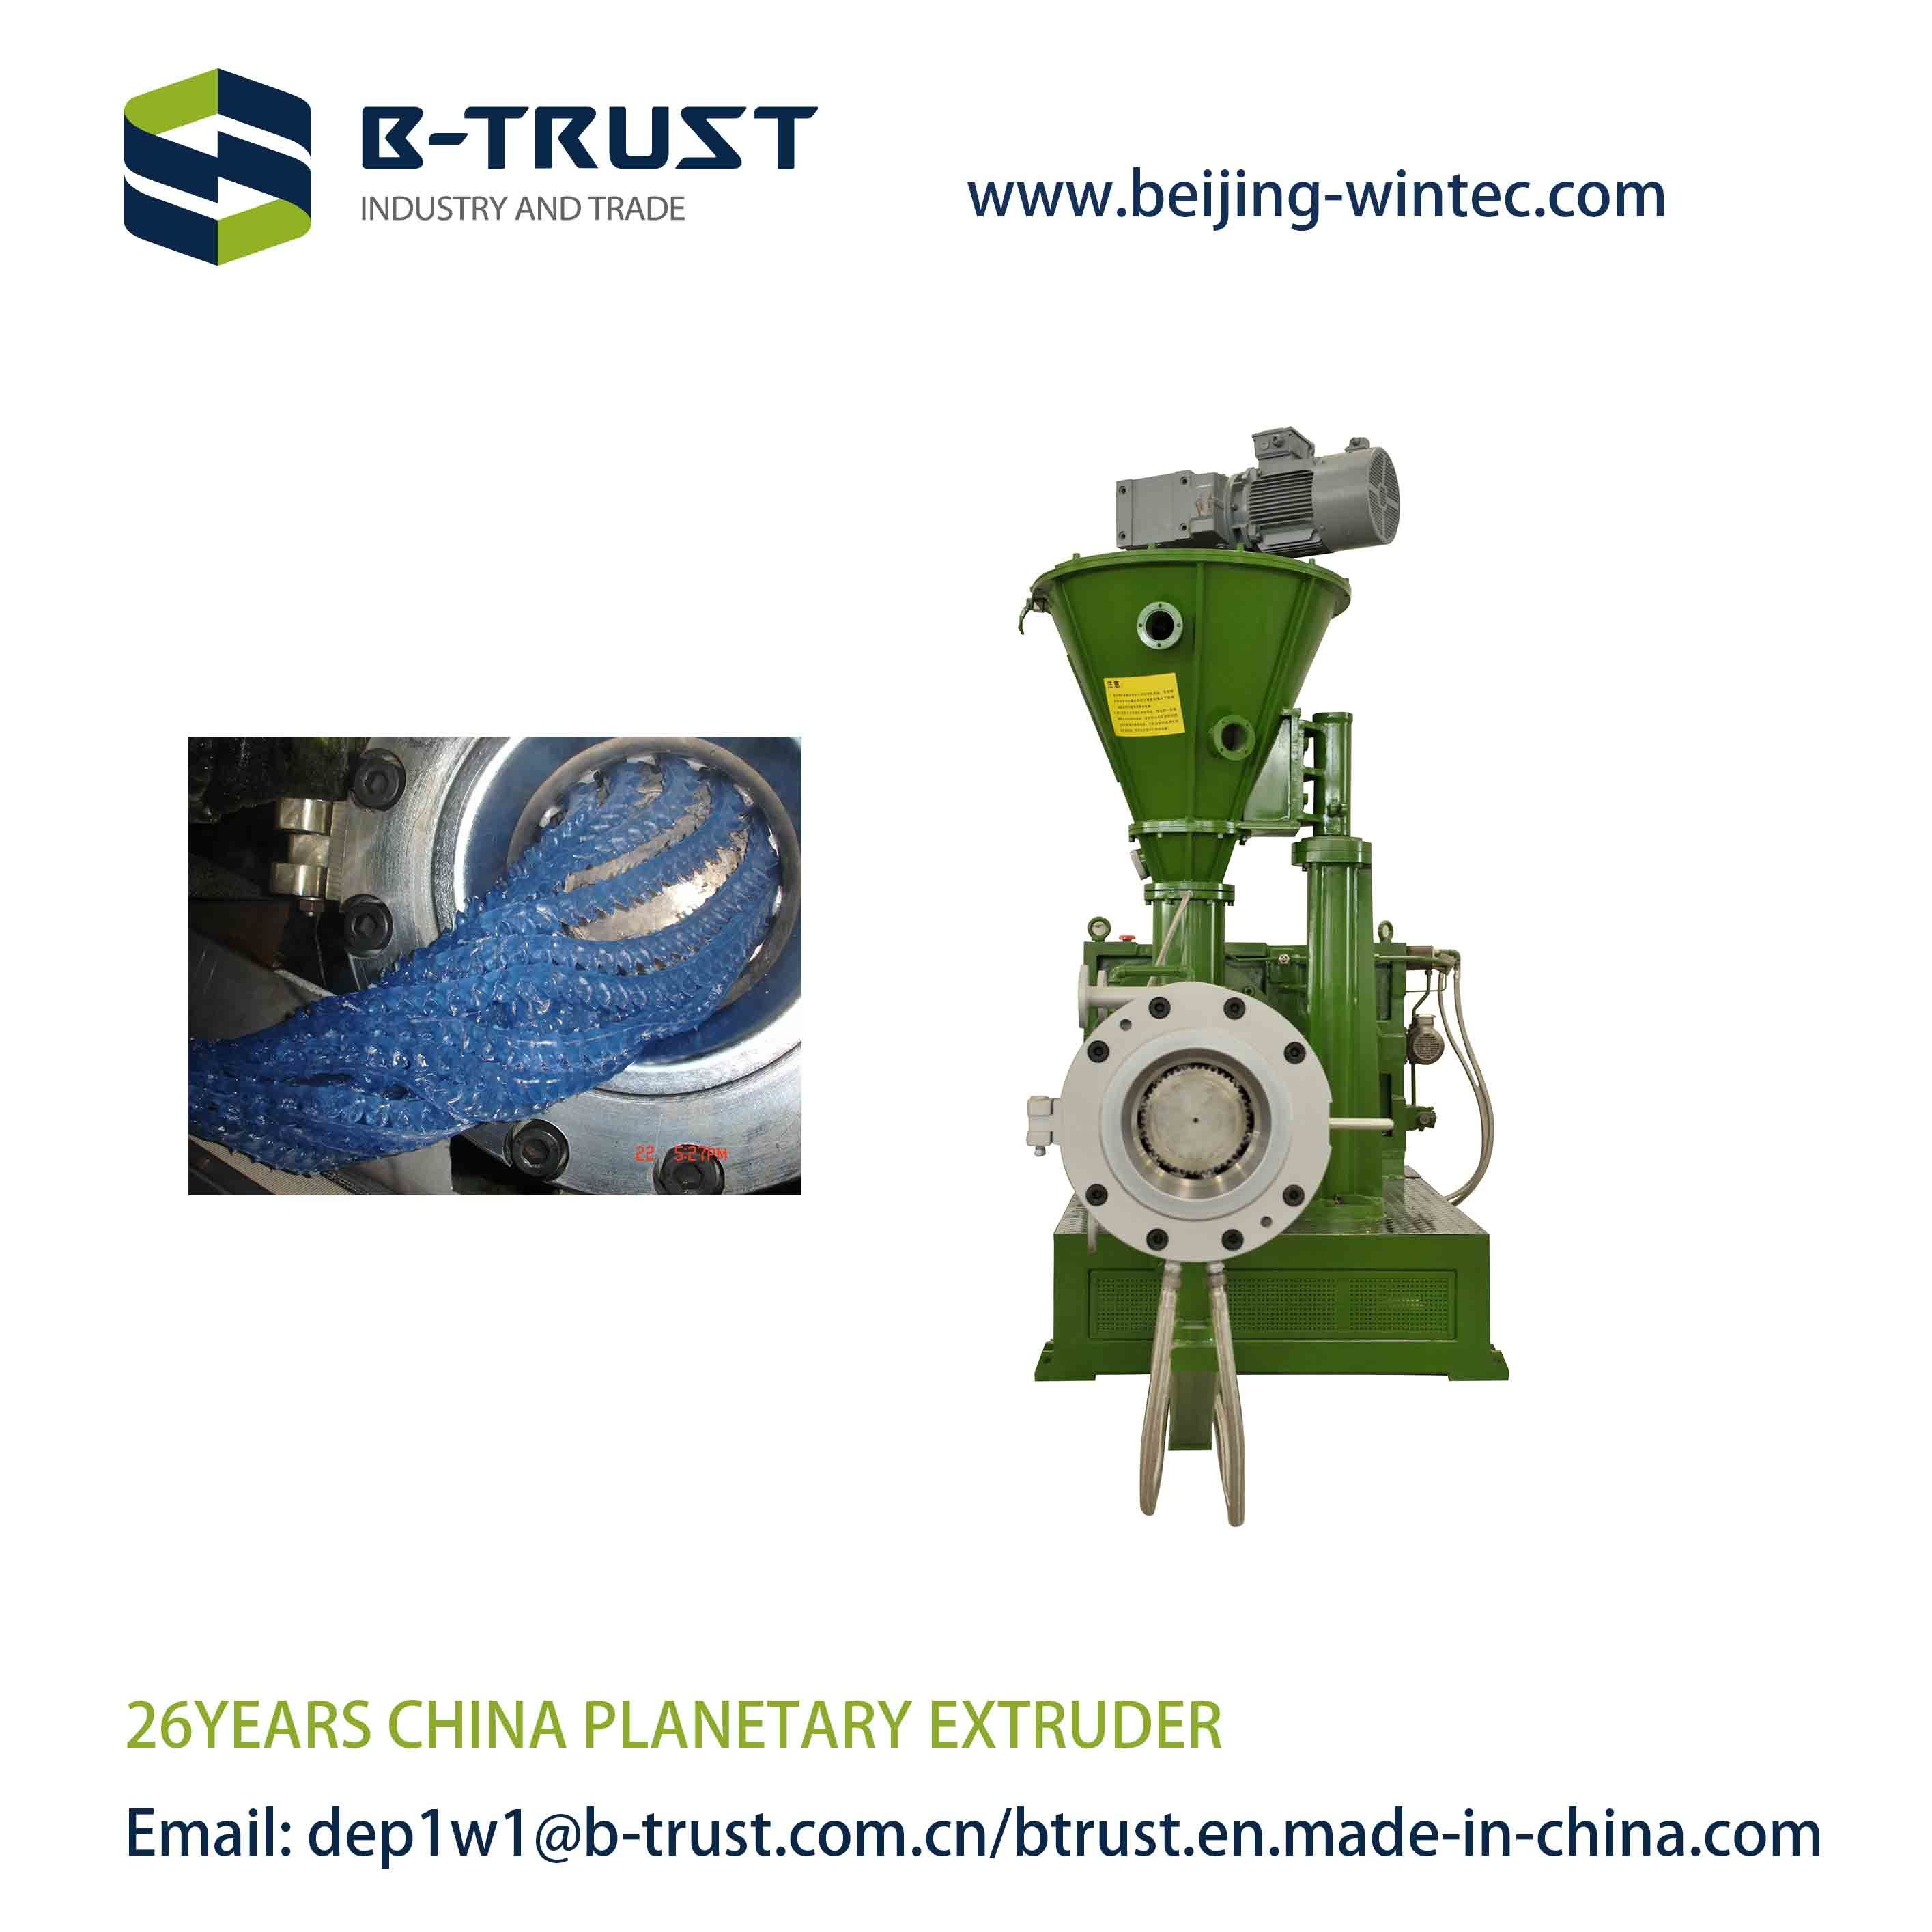 Central Shalft Made of German Material for Planetary Extruder